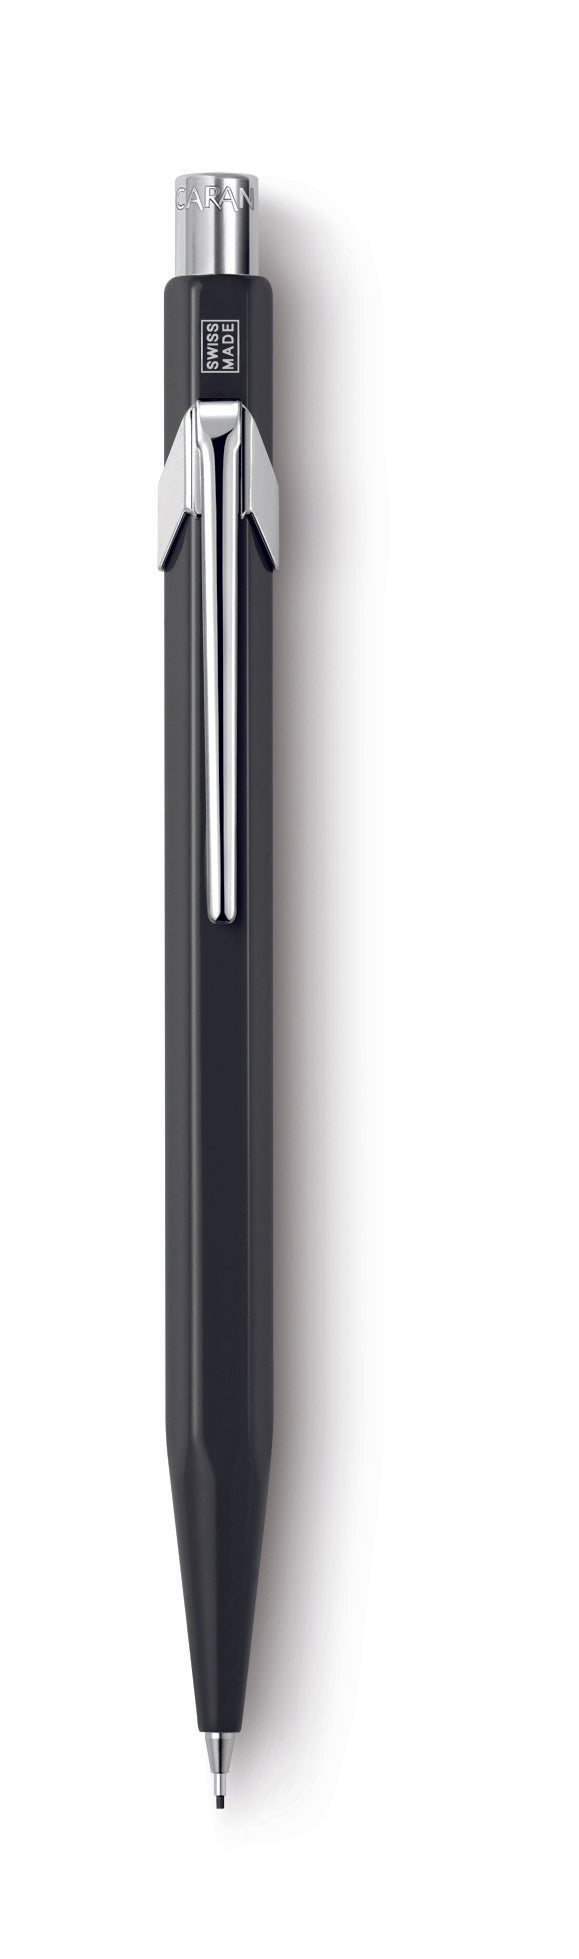 Caran d'Ache 844 Mechanical Pencil